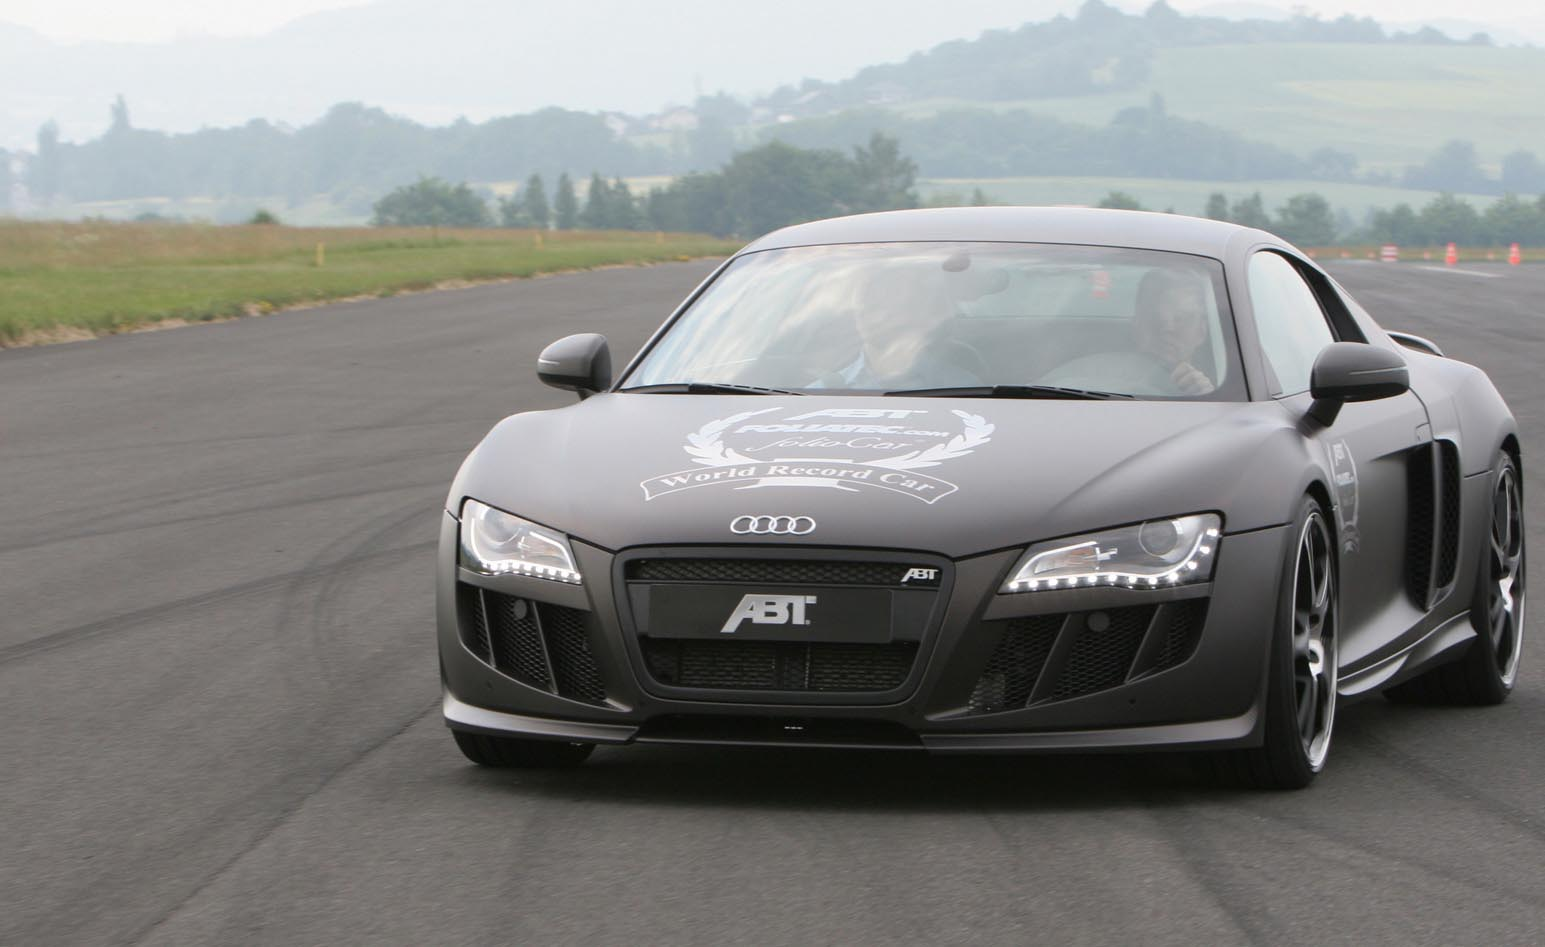 Abt Audi R8 Gets Covered In Record Time Top Speed